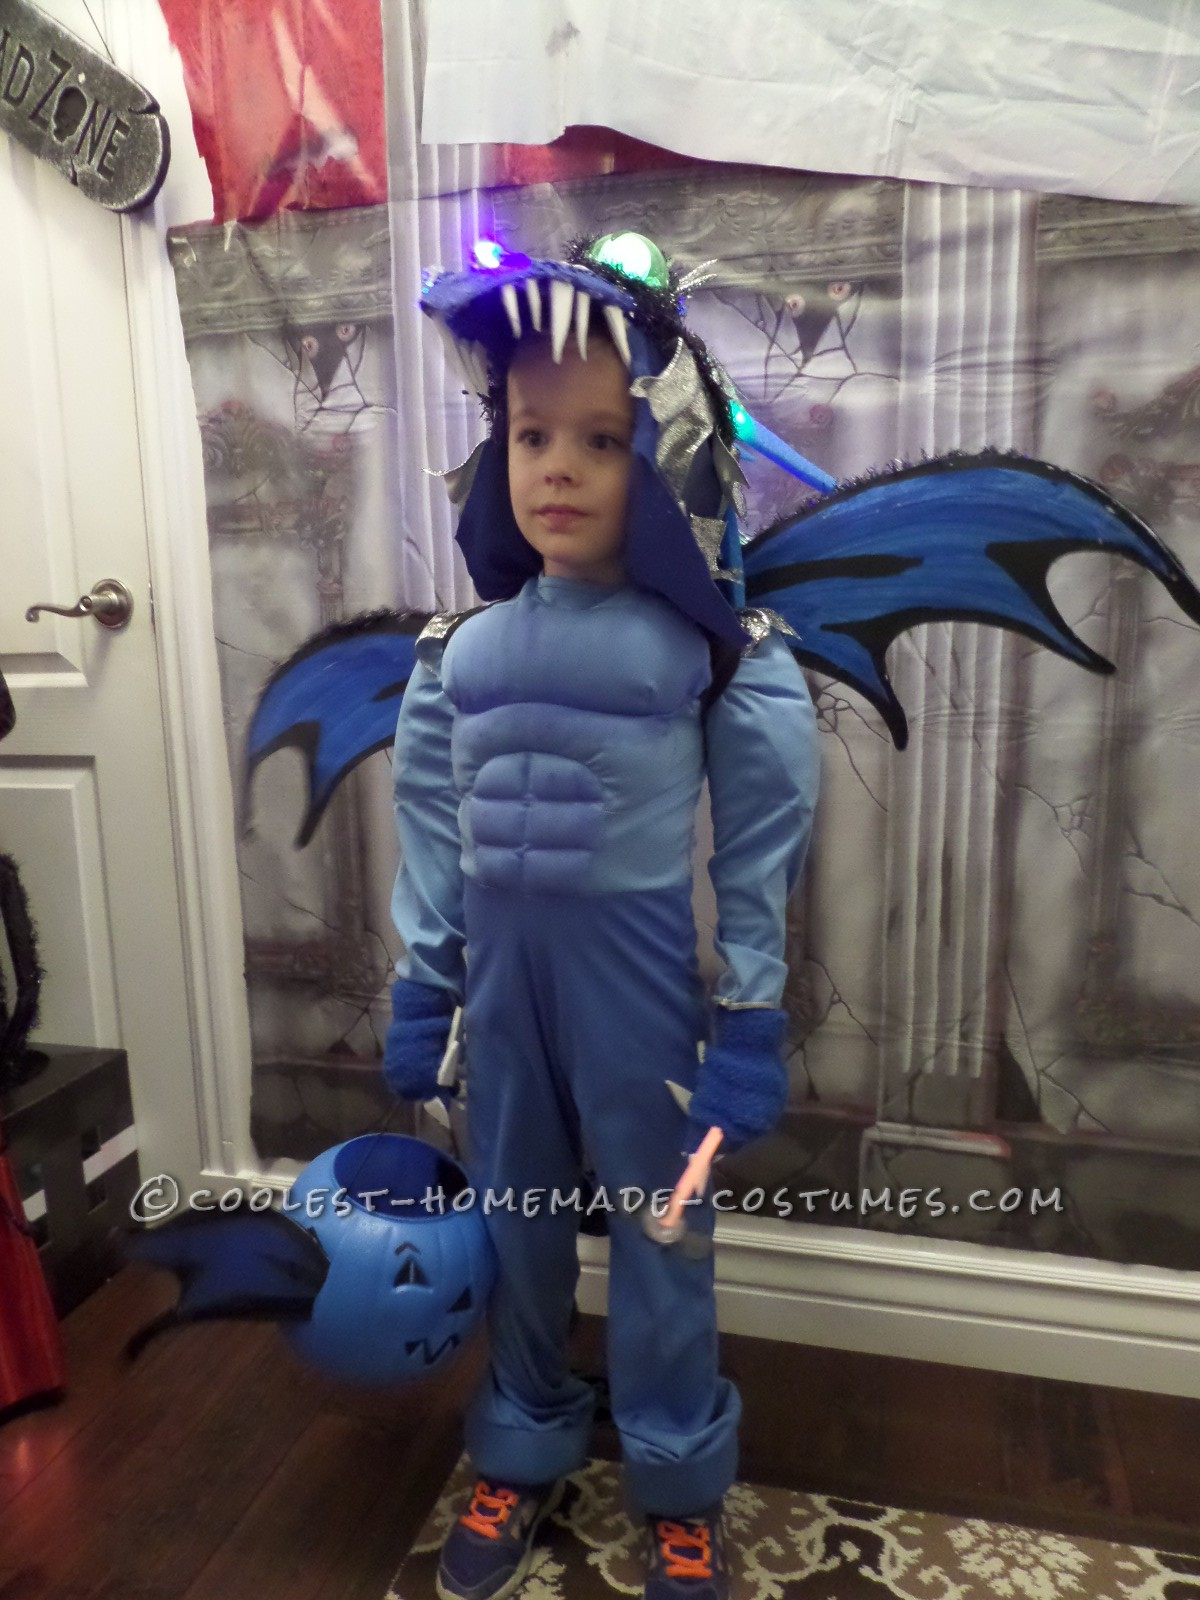 Coolest Homemade How to Train Your Dragon Costume